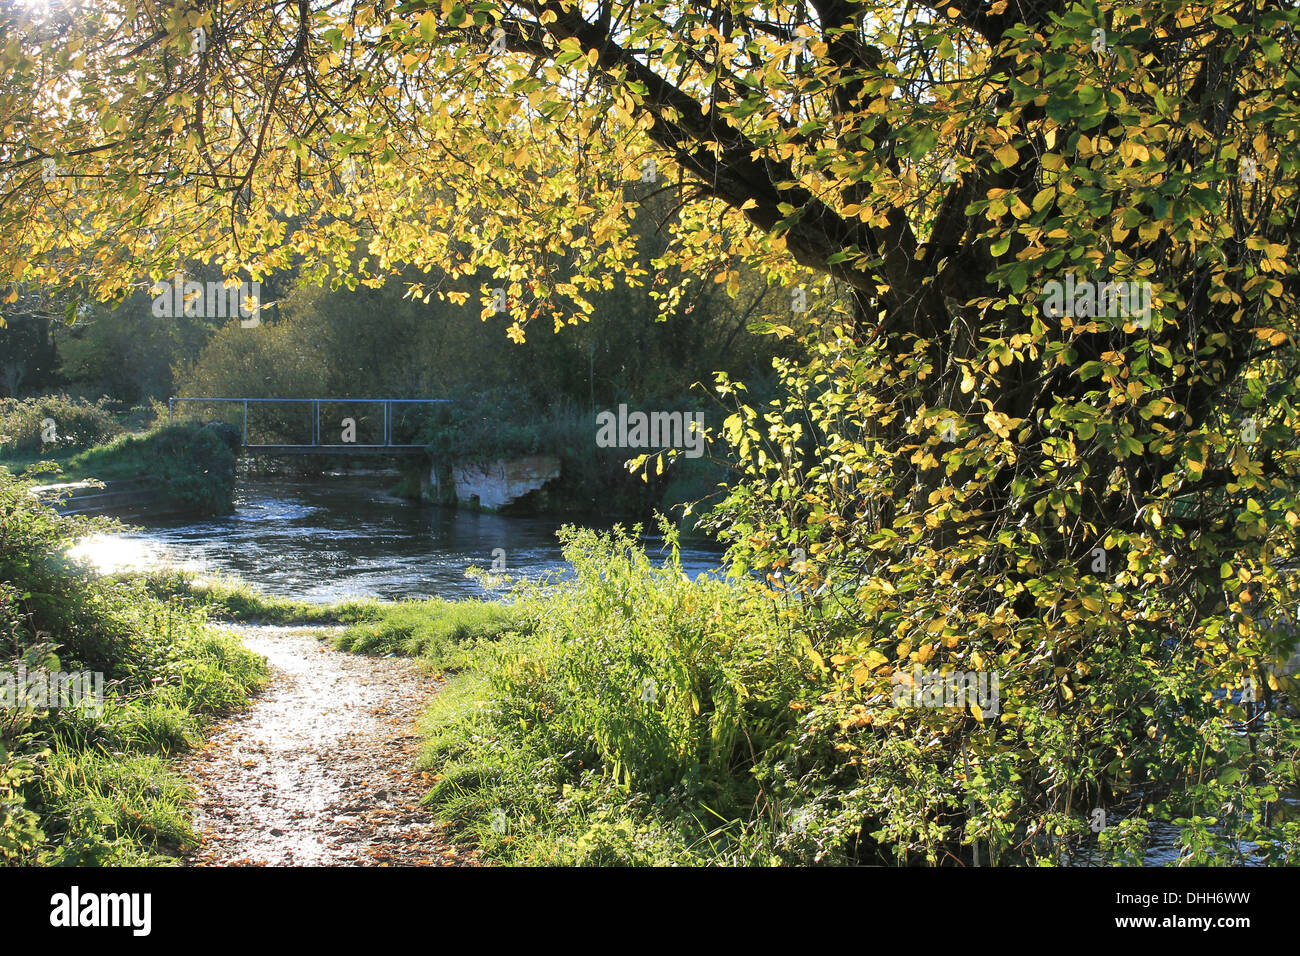 Golden leaves of autumn on the banks of the Itchen Navigation near Twyford, Hampshire, UK - Stock Image